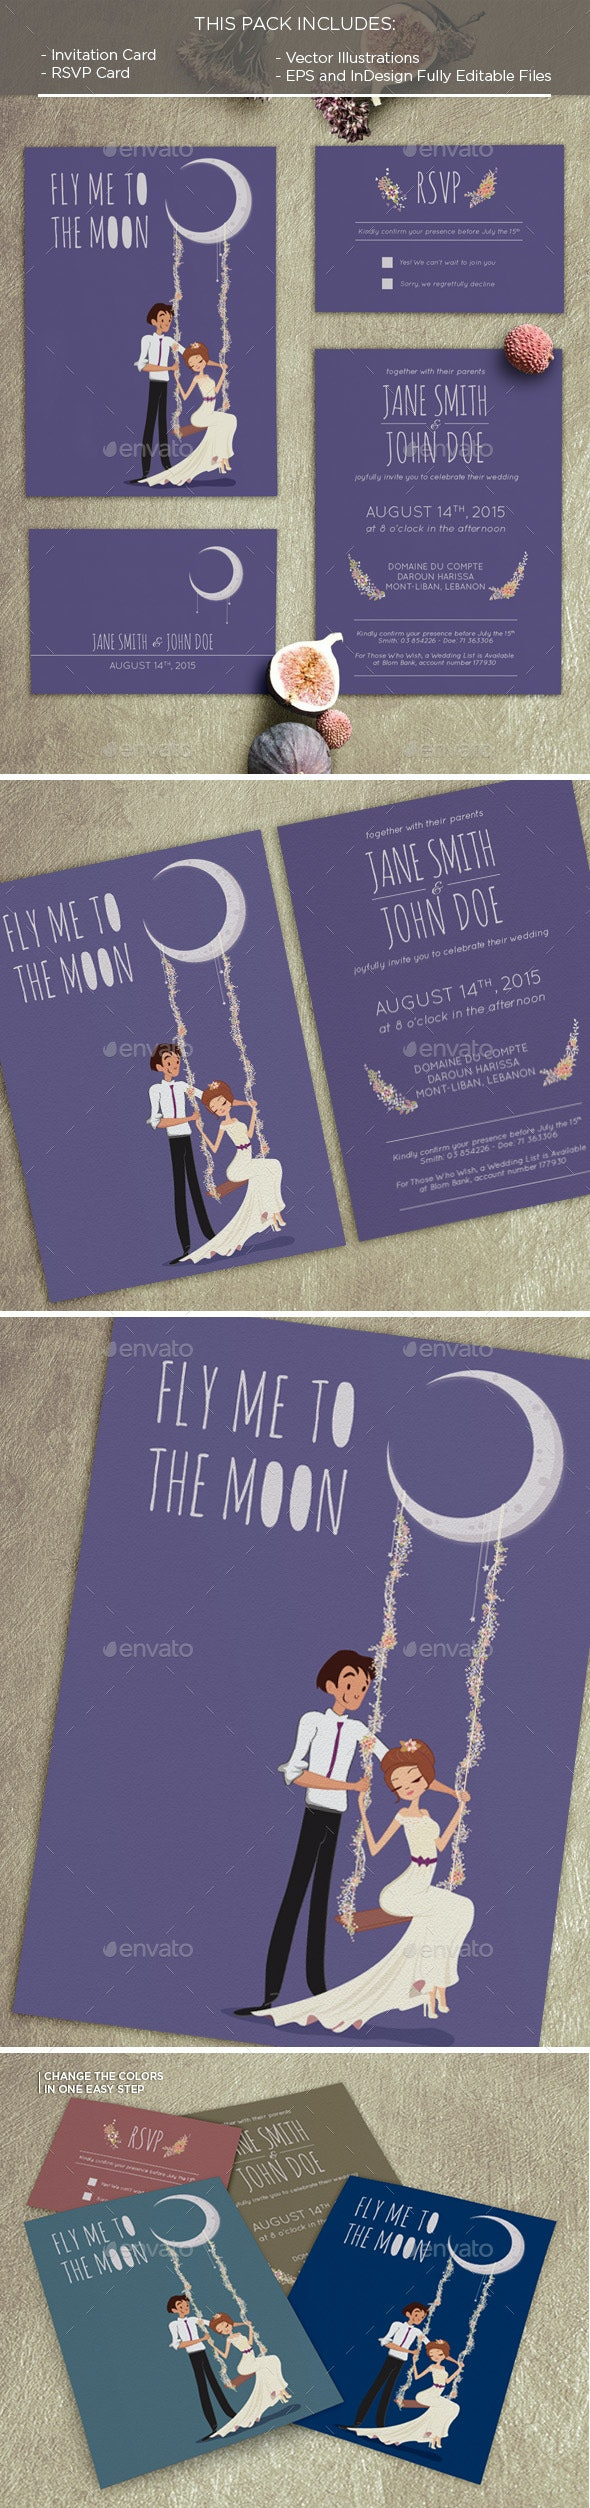 To the Moon Invitation Card - Weddings Cards & Invites